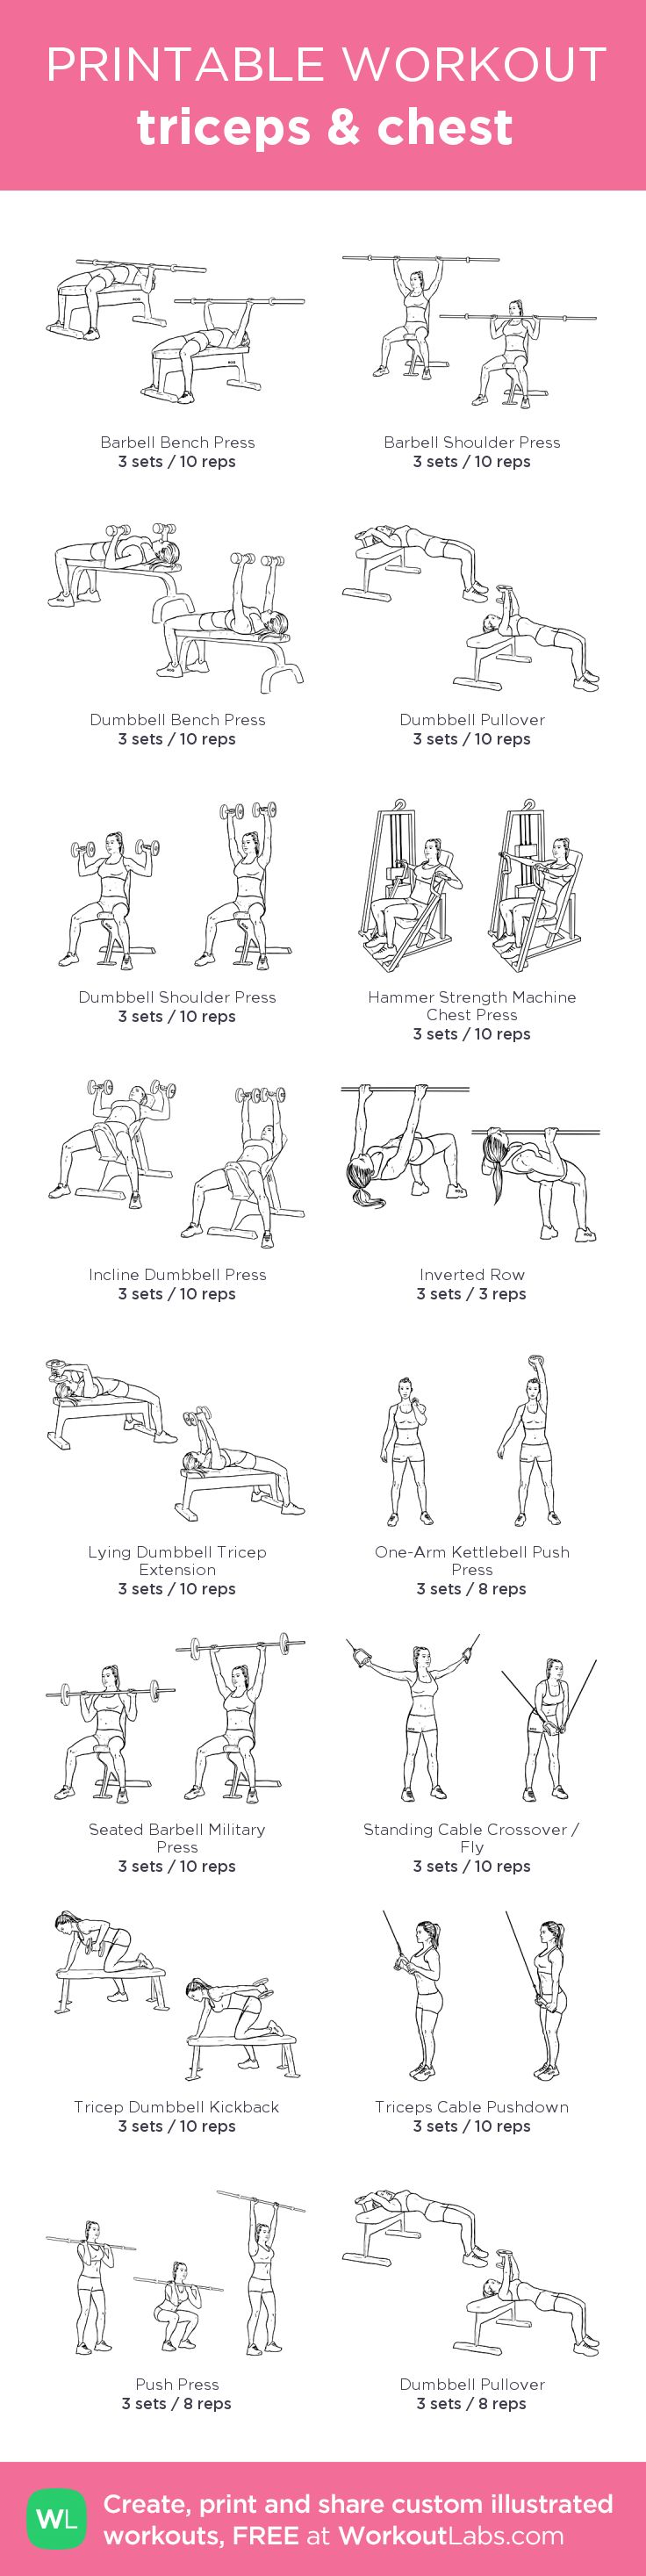 triceps & chest: custom printable workout .. We're helping thousands of Ladies (Just like You) Get Fit & Sexy